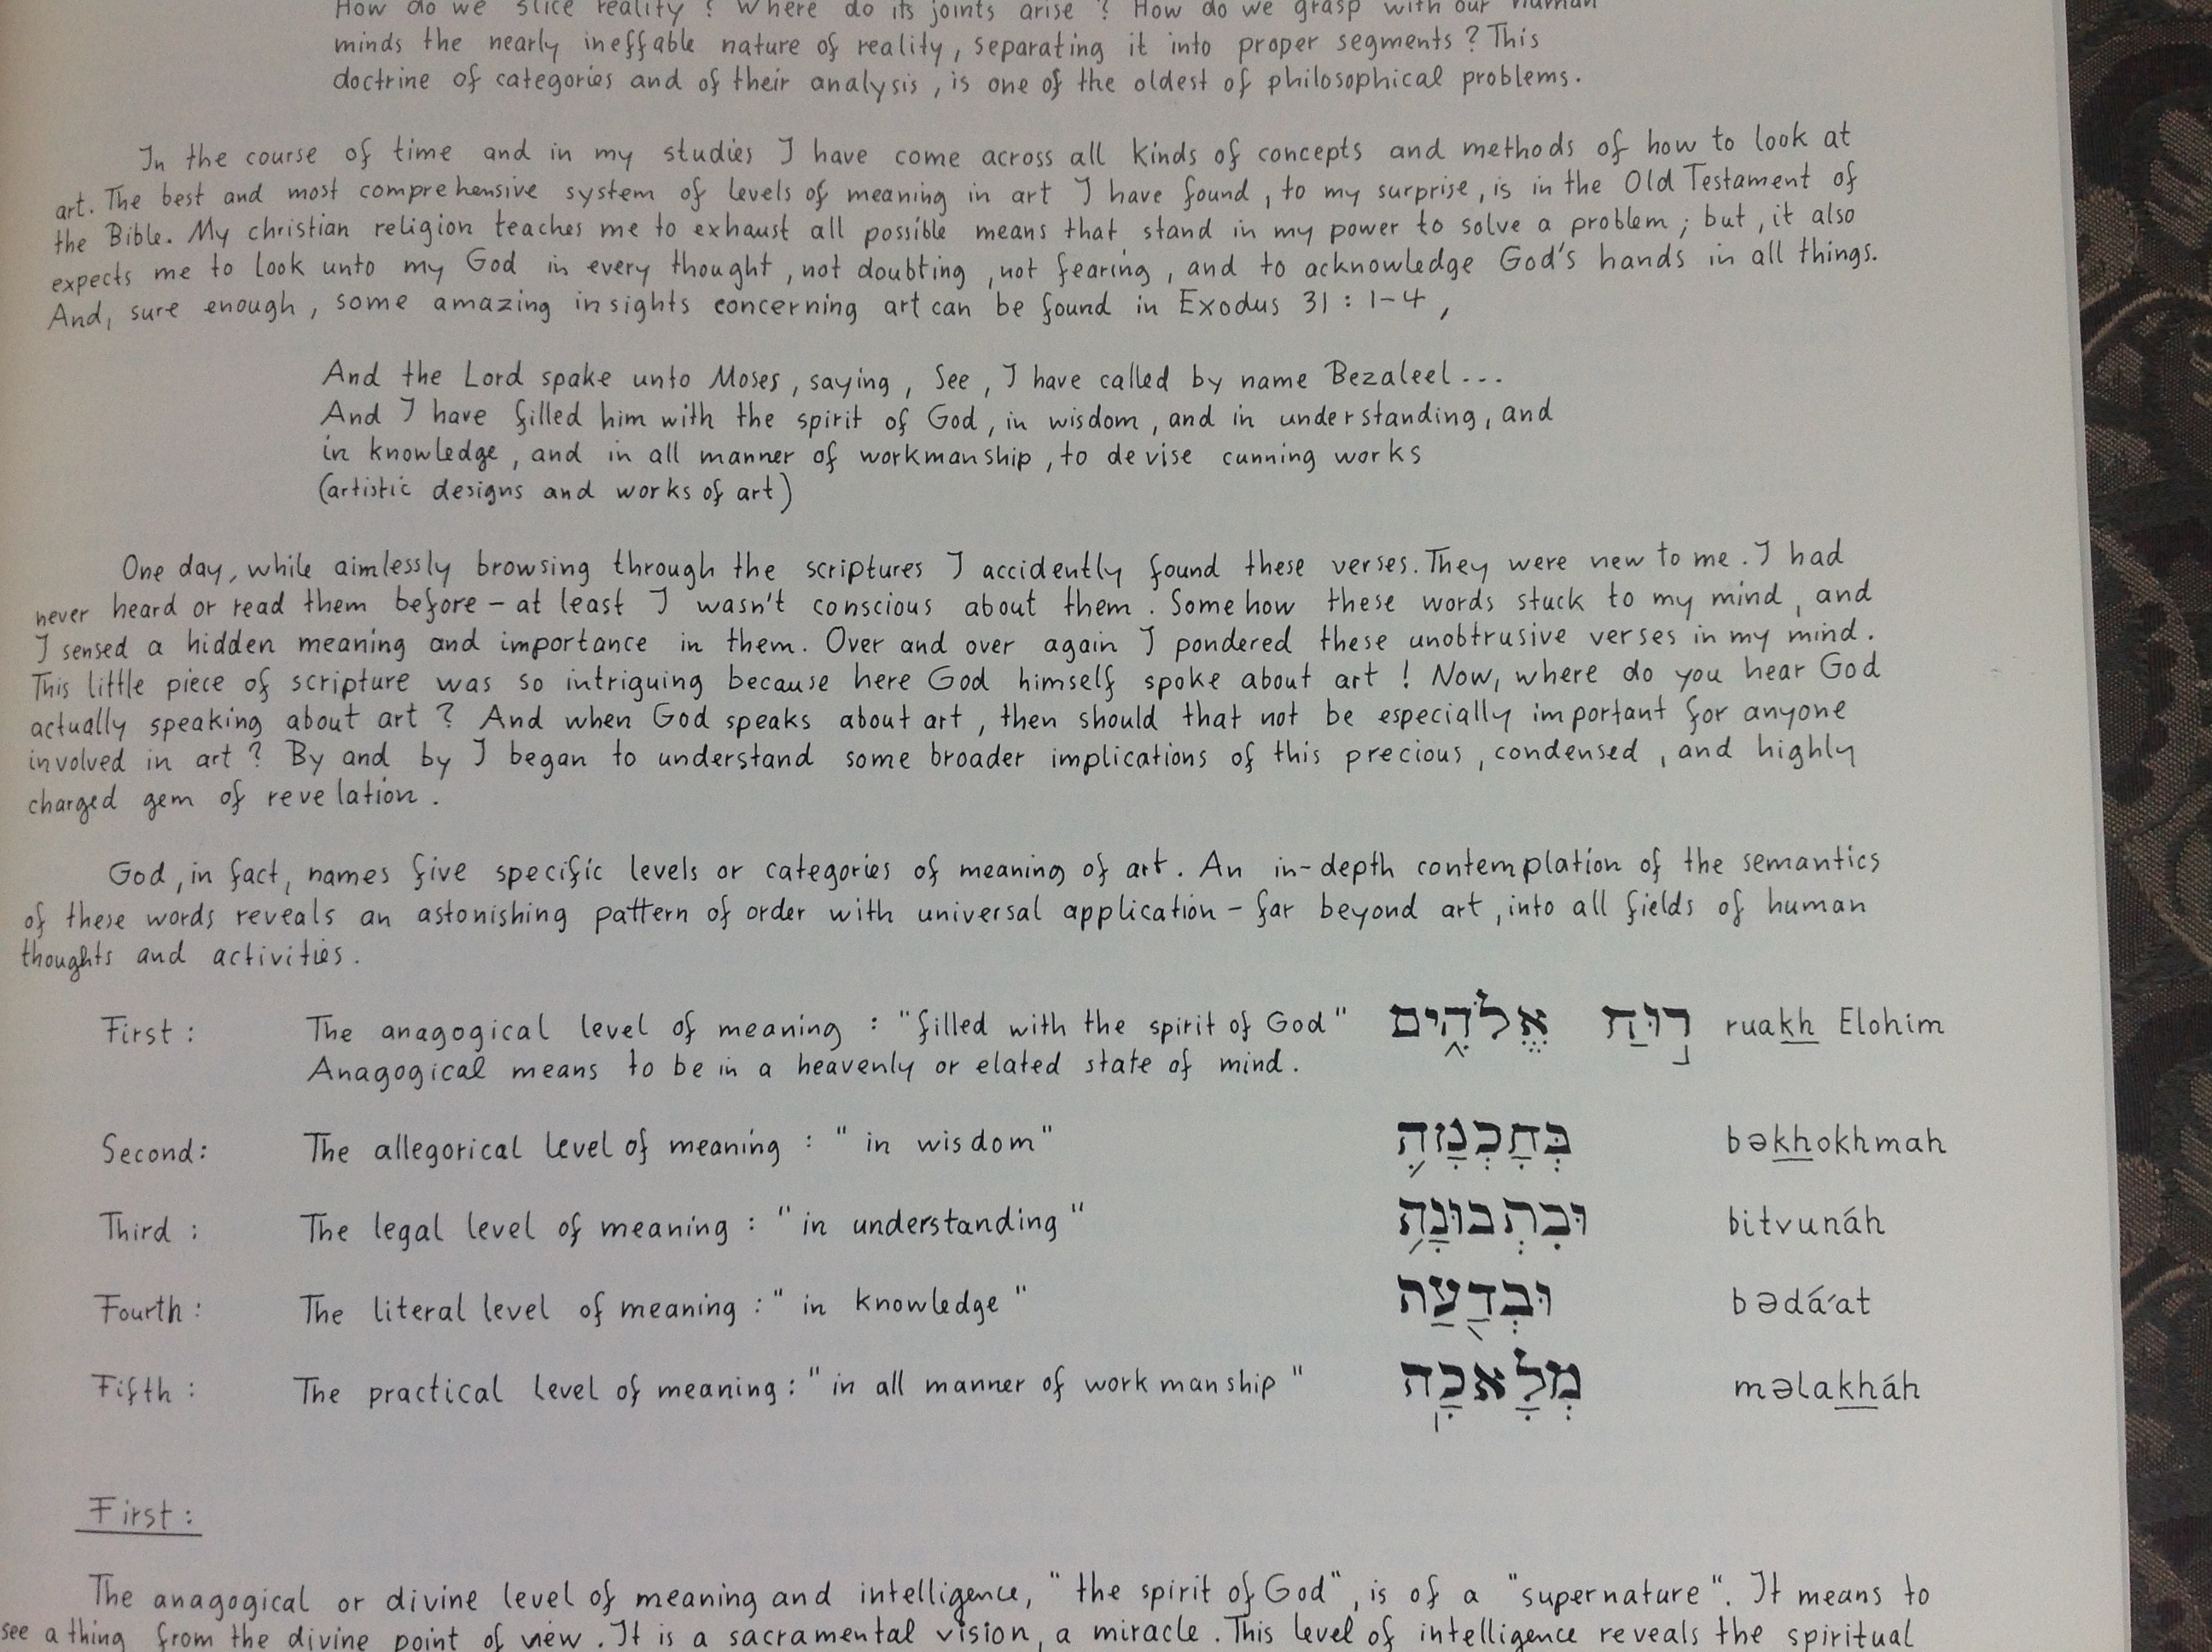 Picture #17 - Page from Hagen's Book